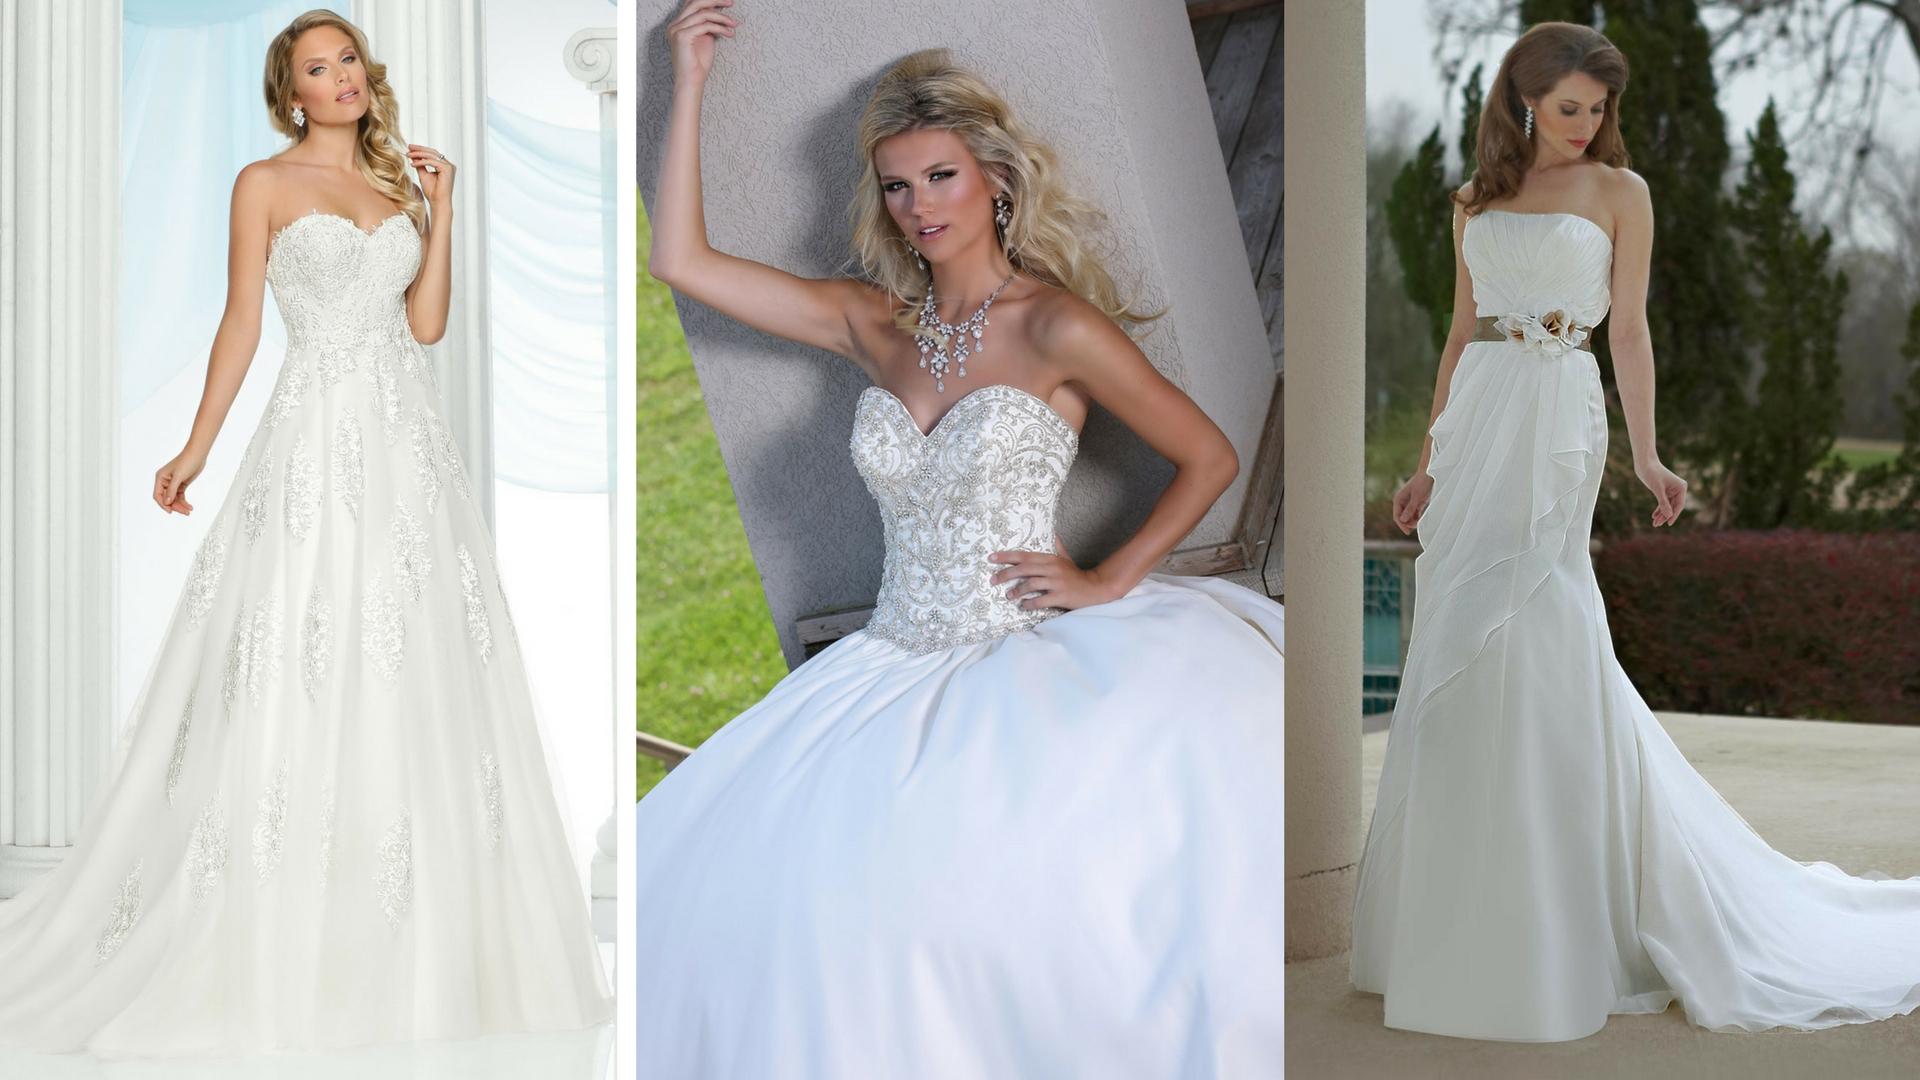 Let Me Be Your Sweetheart: 14 Ultra-Romantic Strapless Sweetheart ...